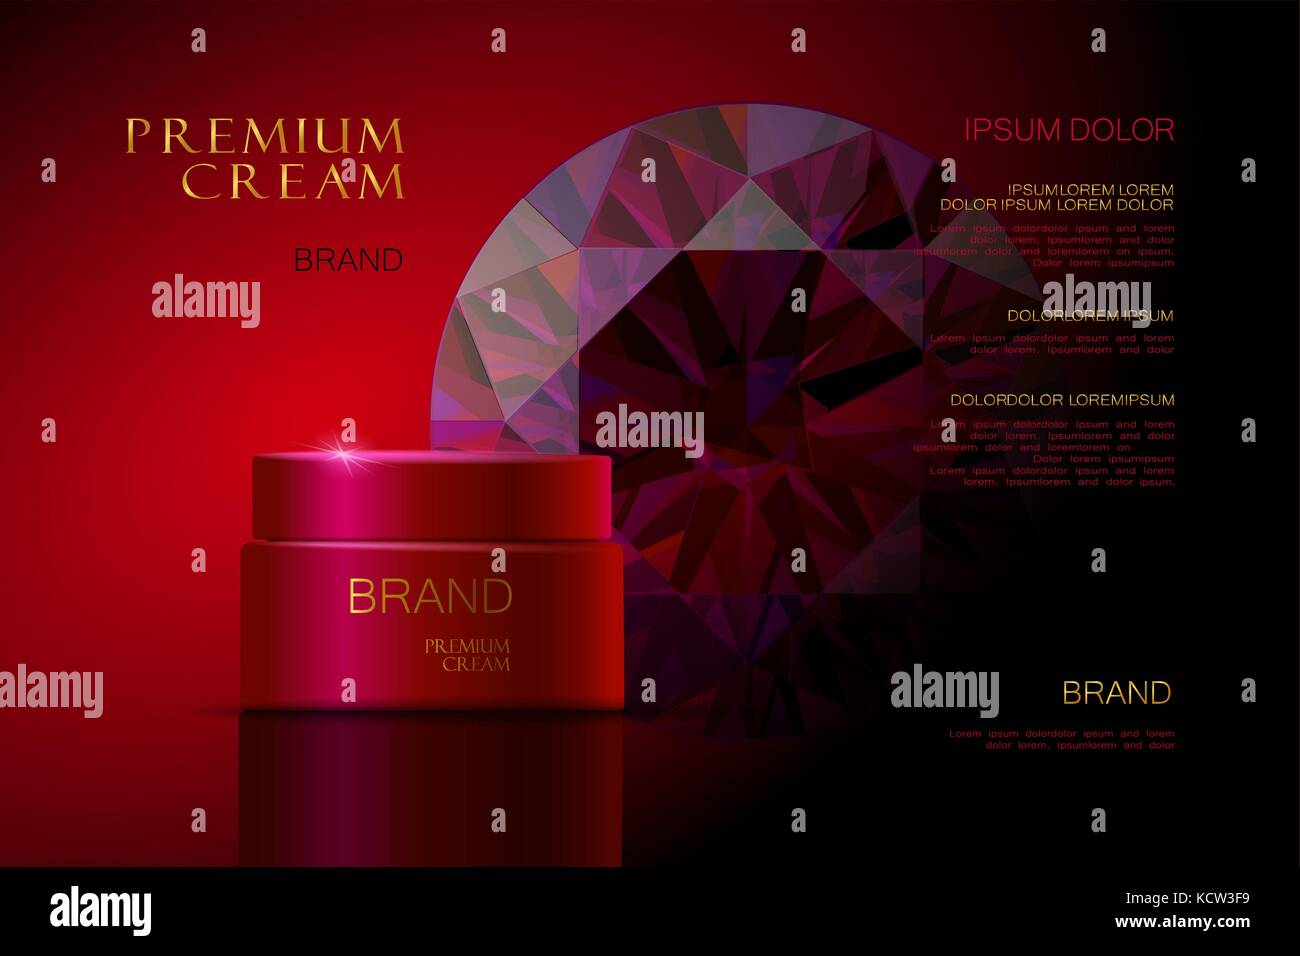 3d realistic vector background cosmetic ads Premium Cream. red packaging for cosmetics. skin care. vector illustration - Stock Image